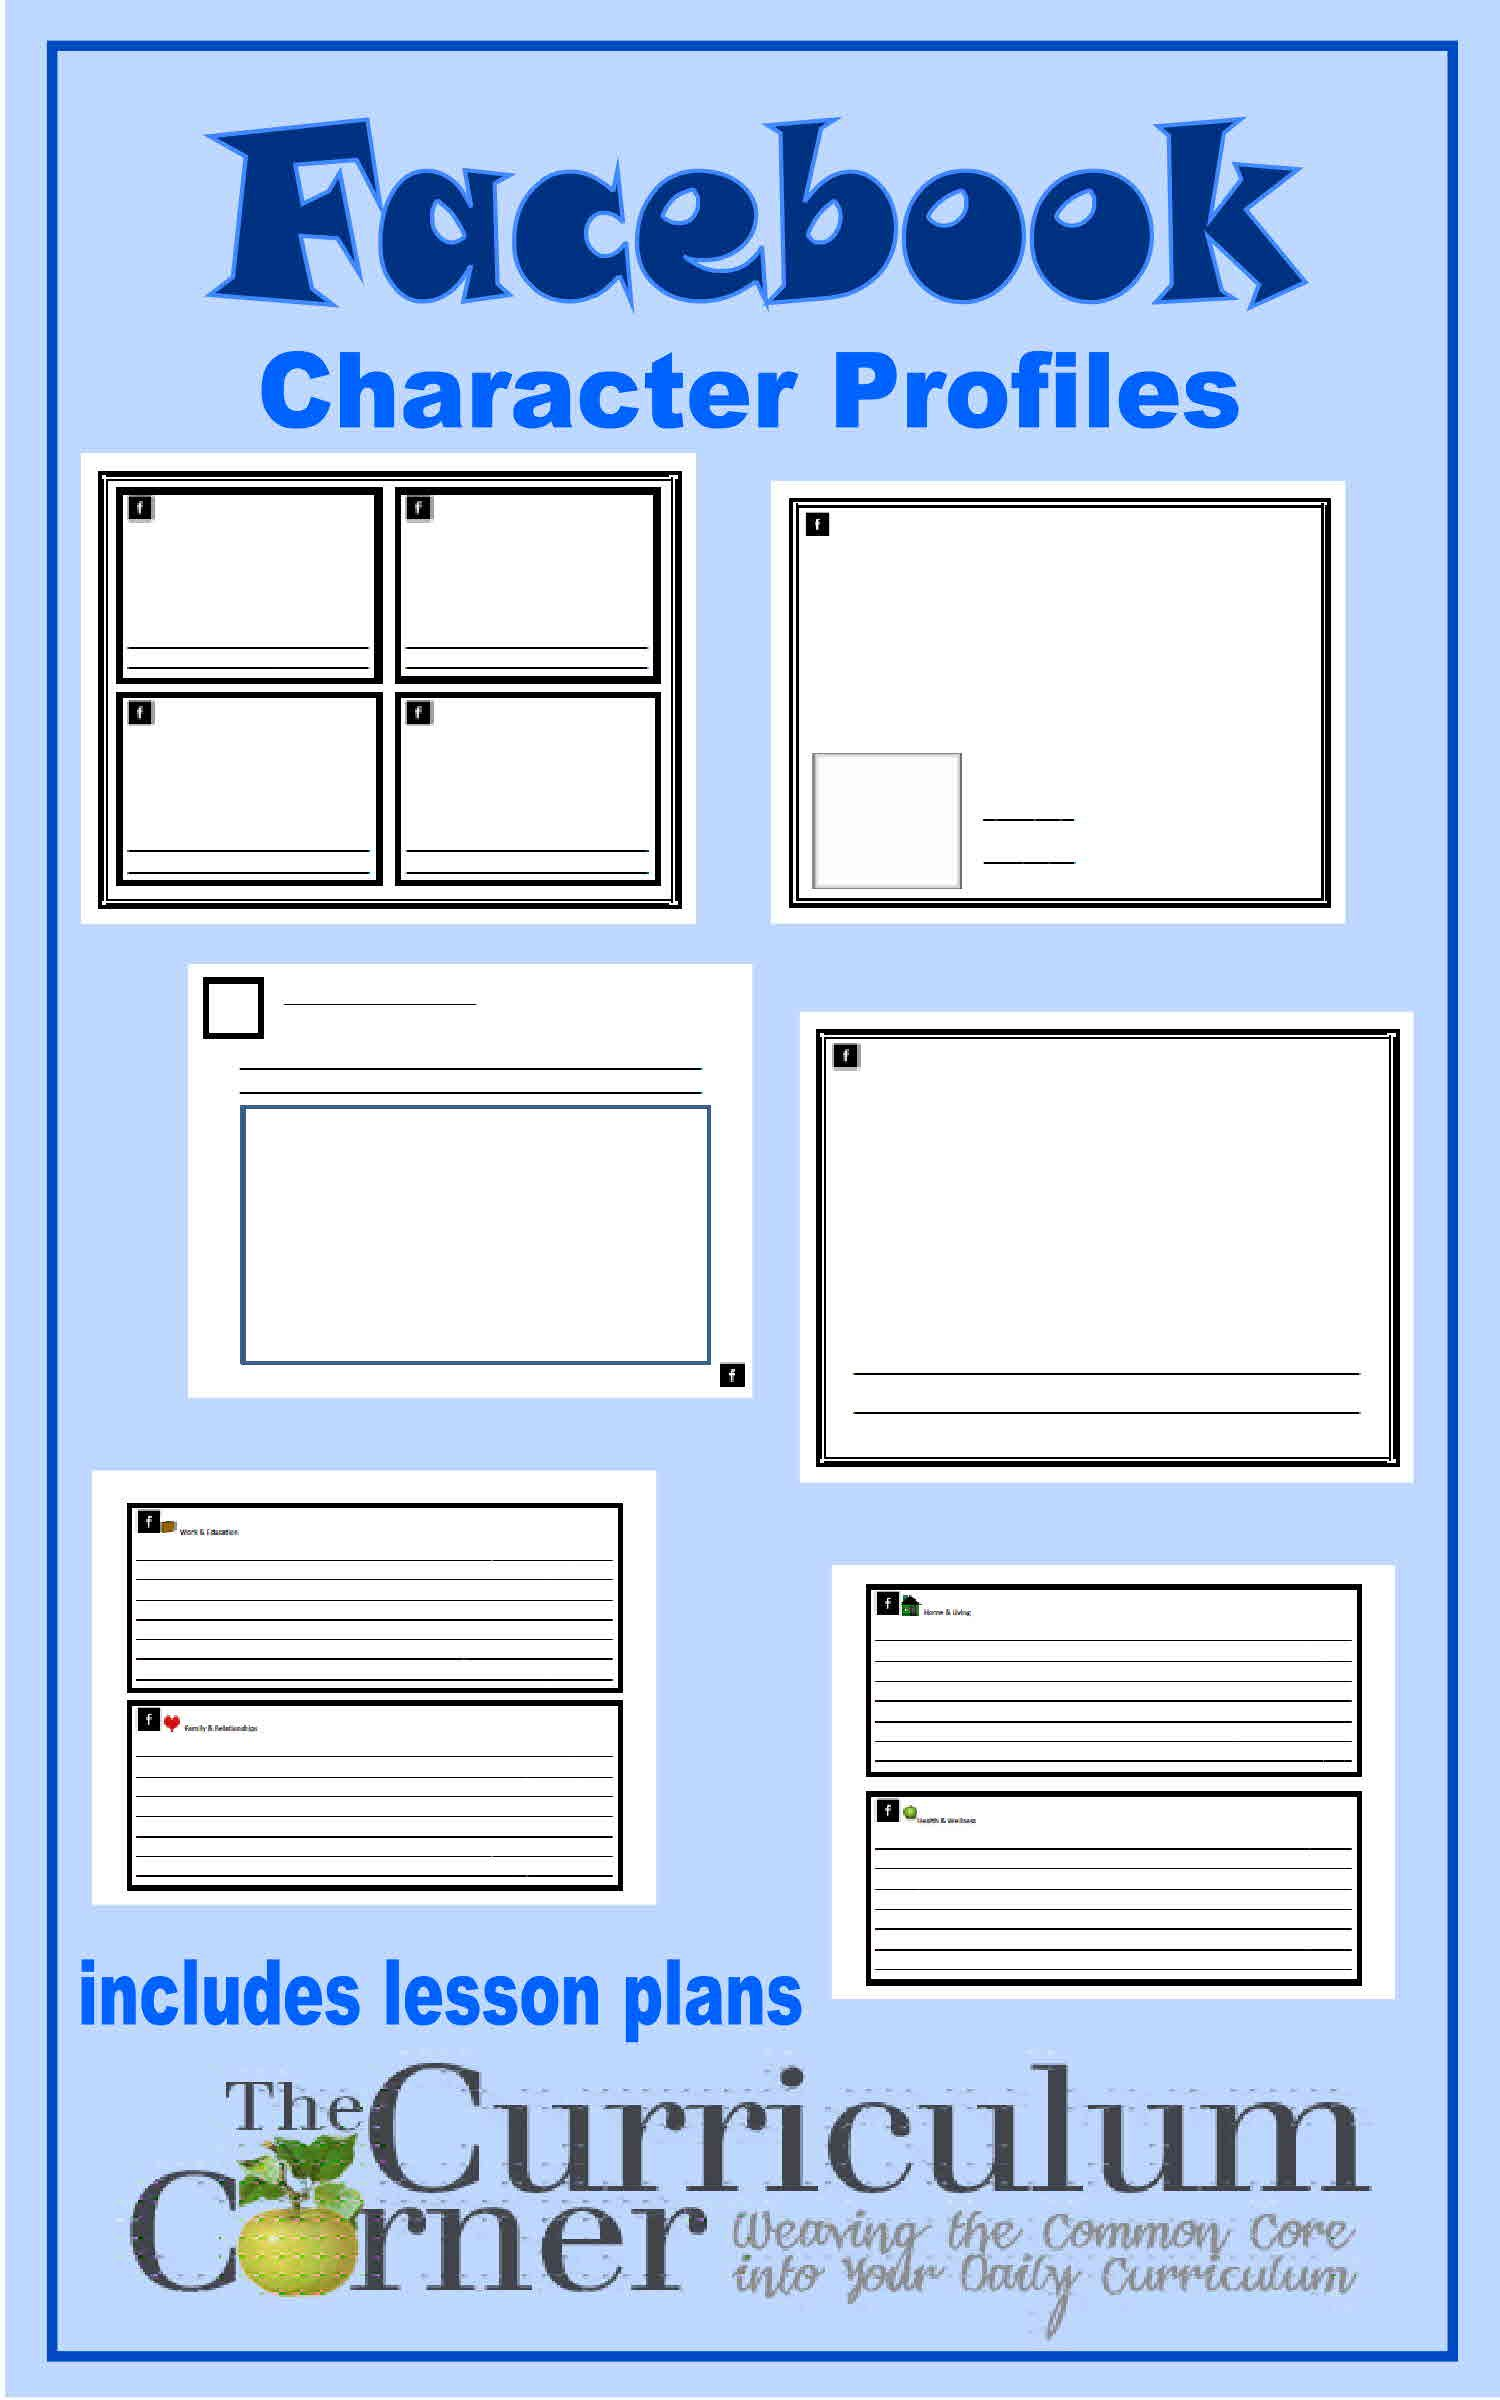 character facebook profile character profile curriculum and essay